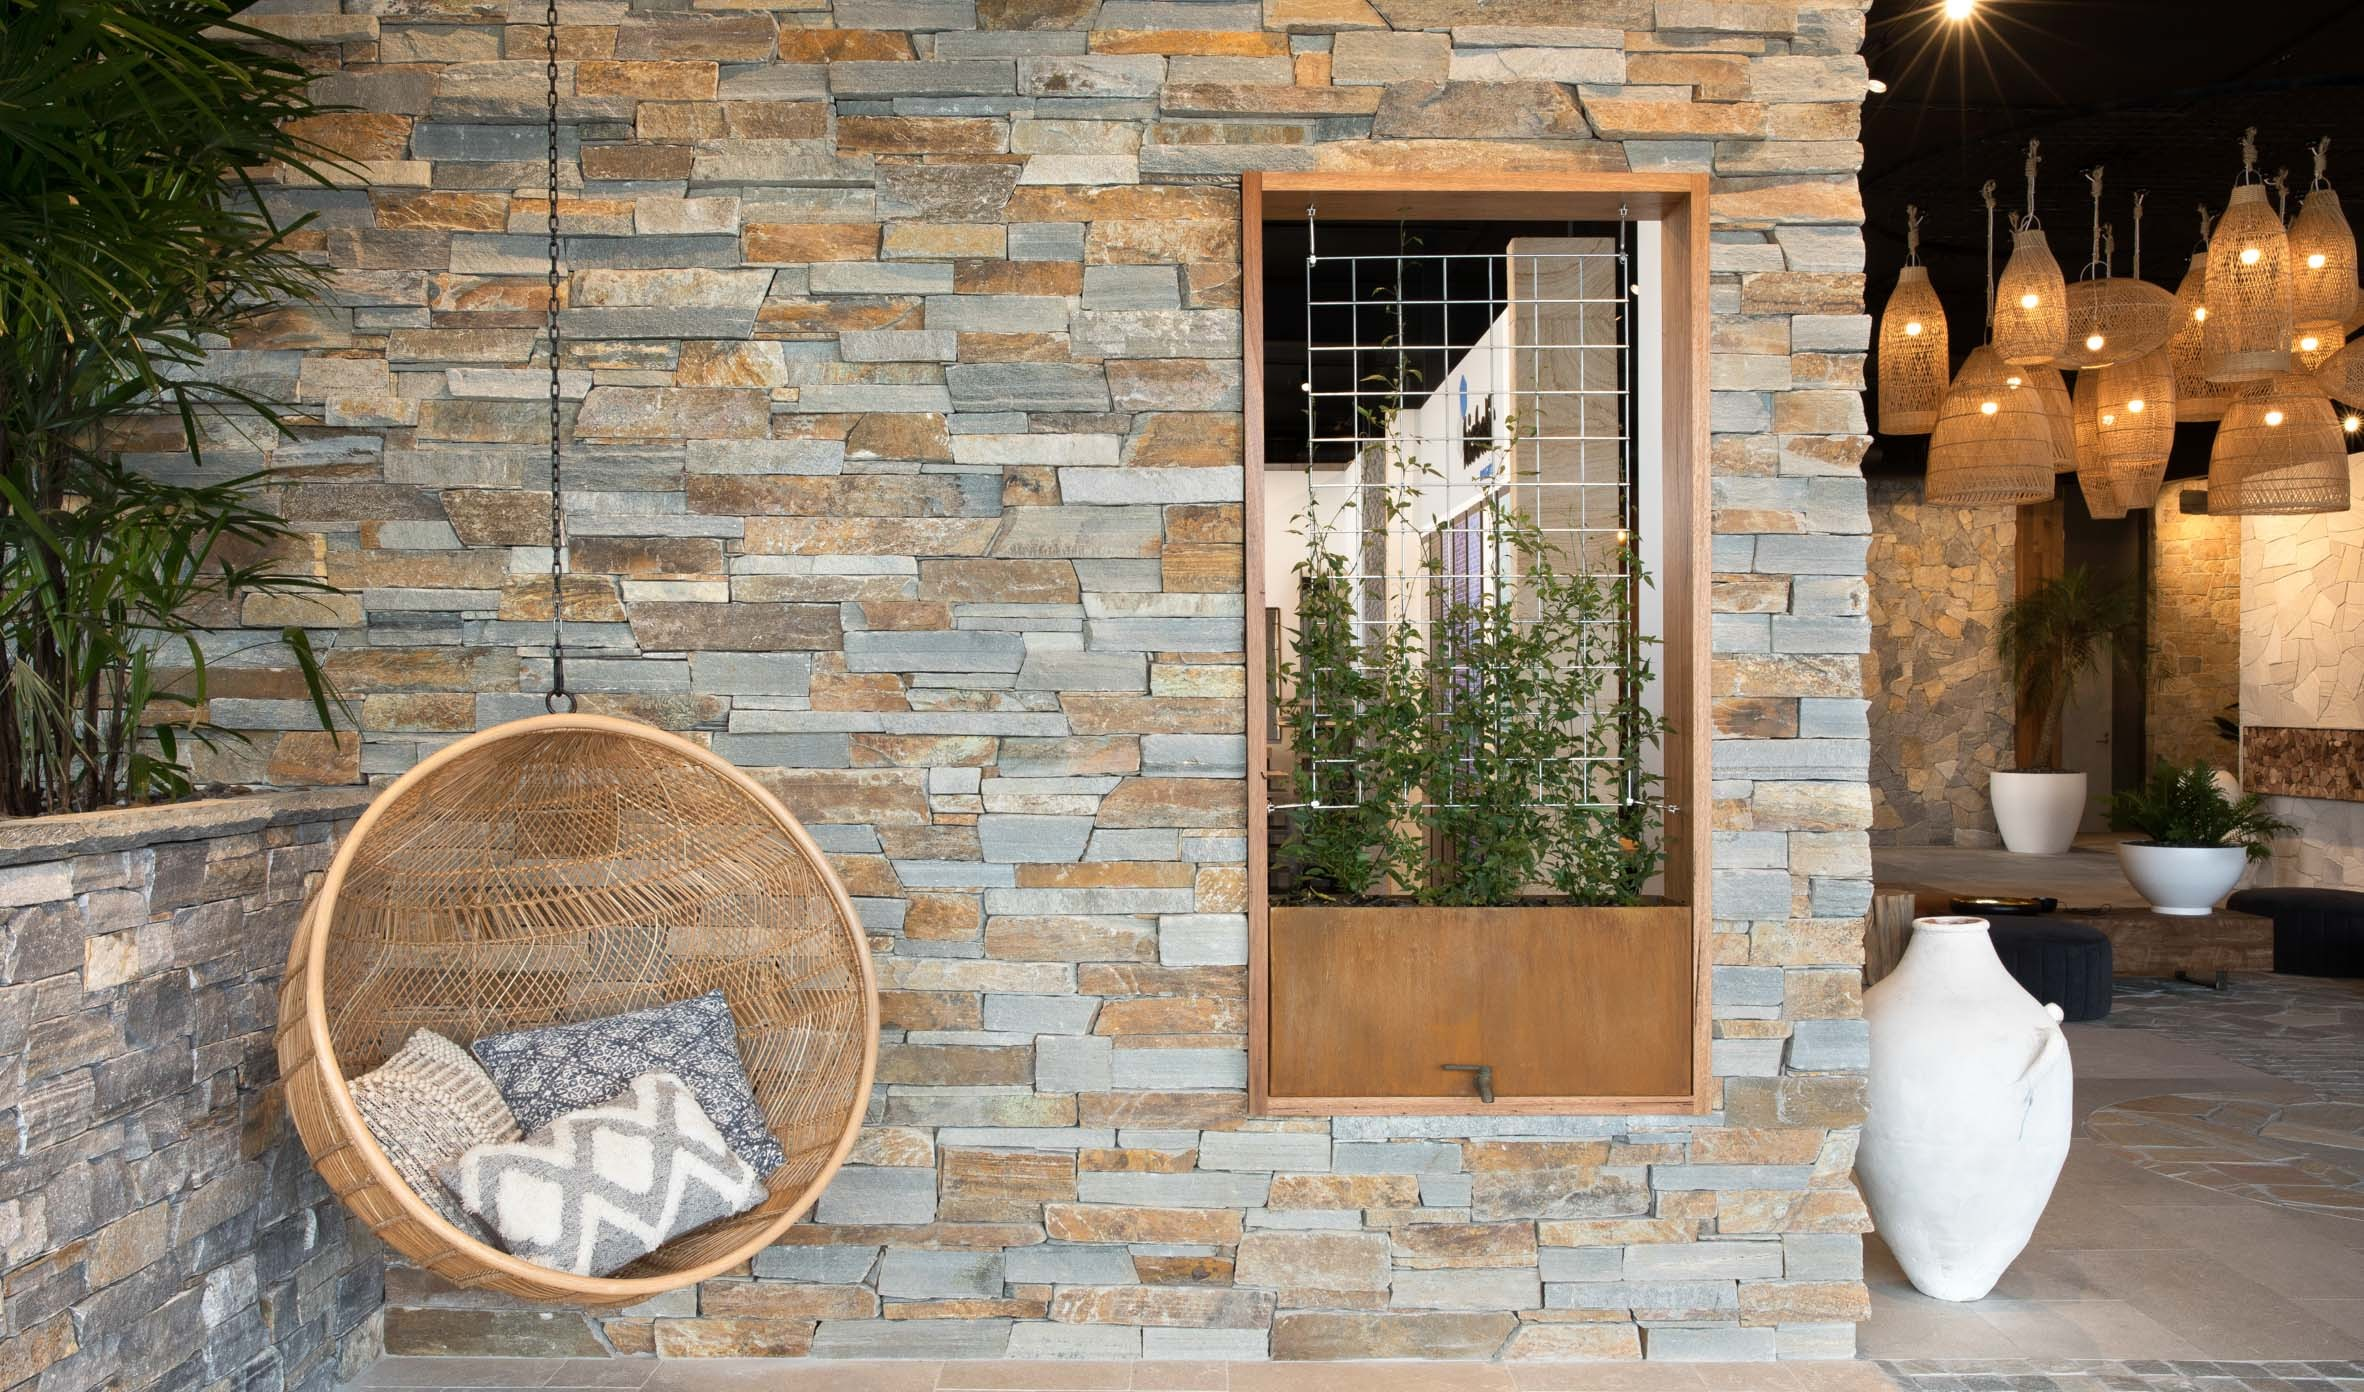 Wall-Cladding-and-Stacked-Stones Thumbnails wall-cladding-and-stacked-stones-09